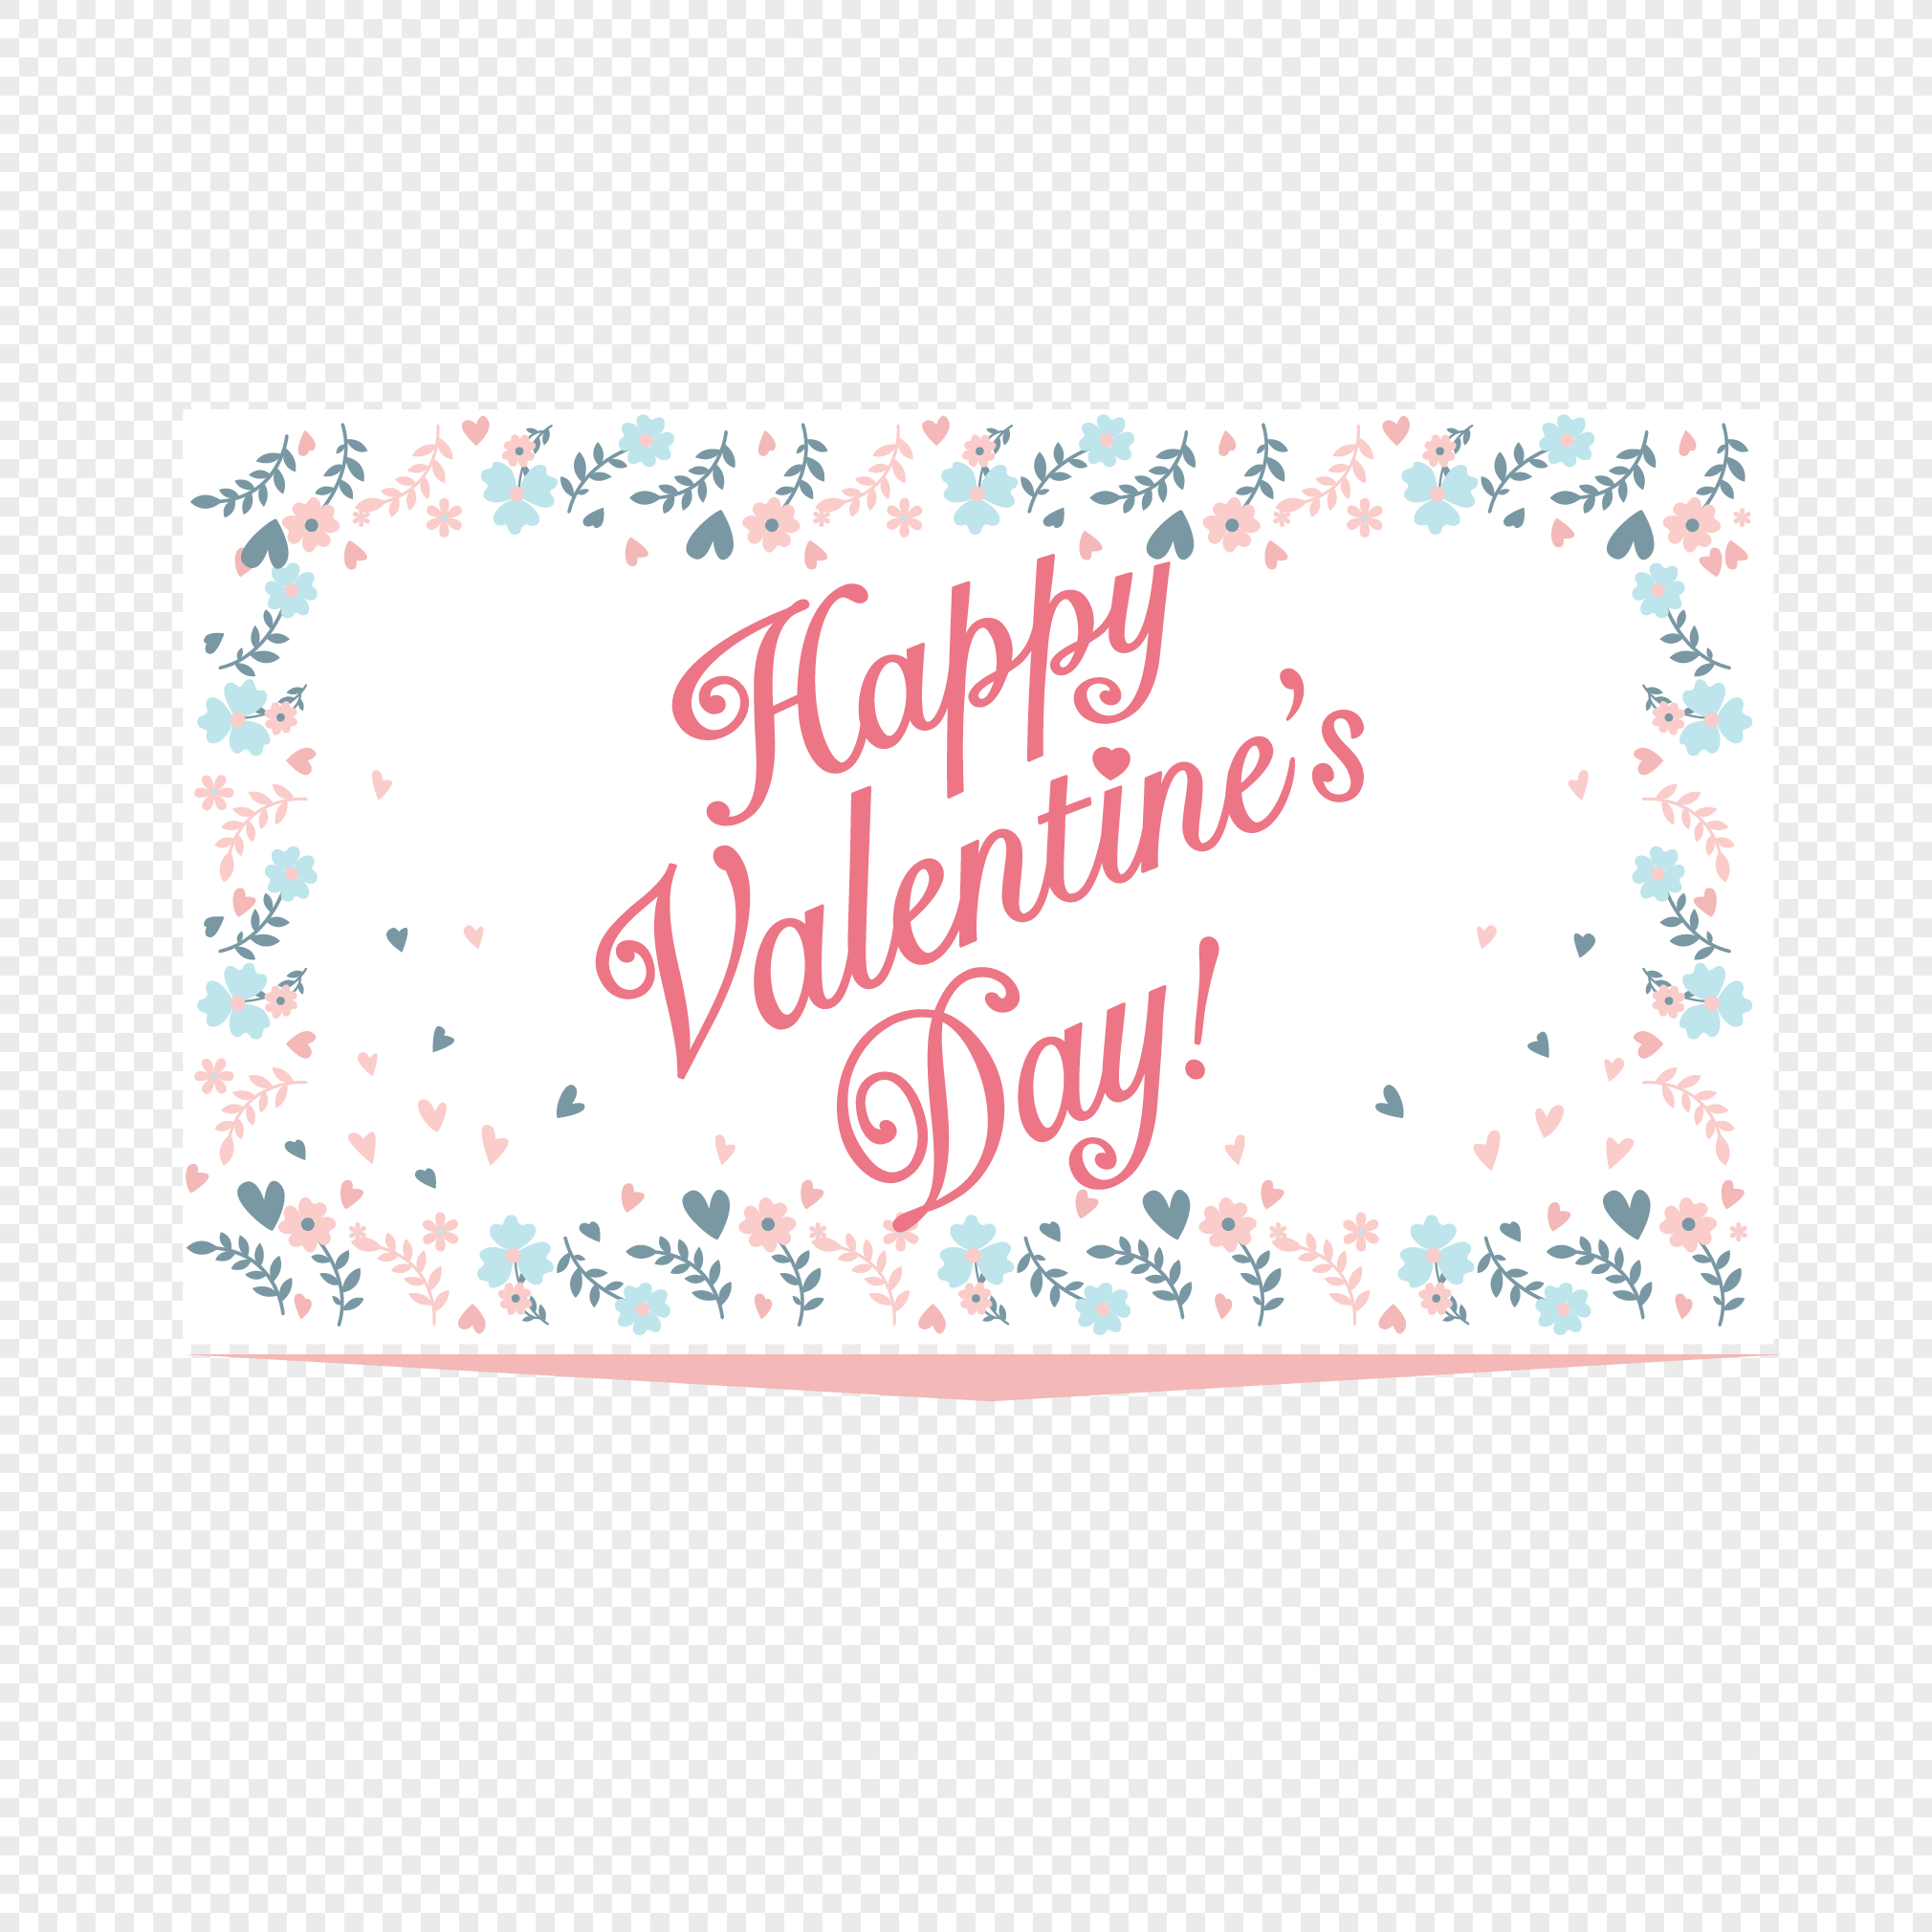 Happy Valentines Day Decorations Png Image Picture Free Download